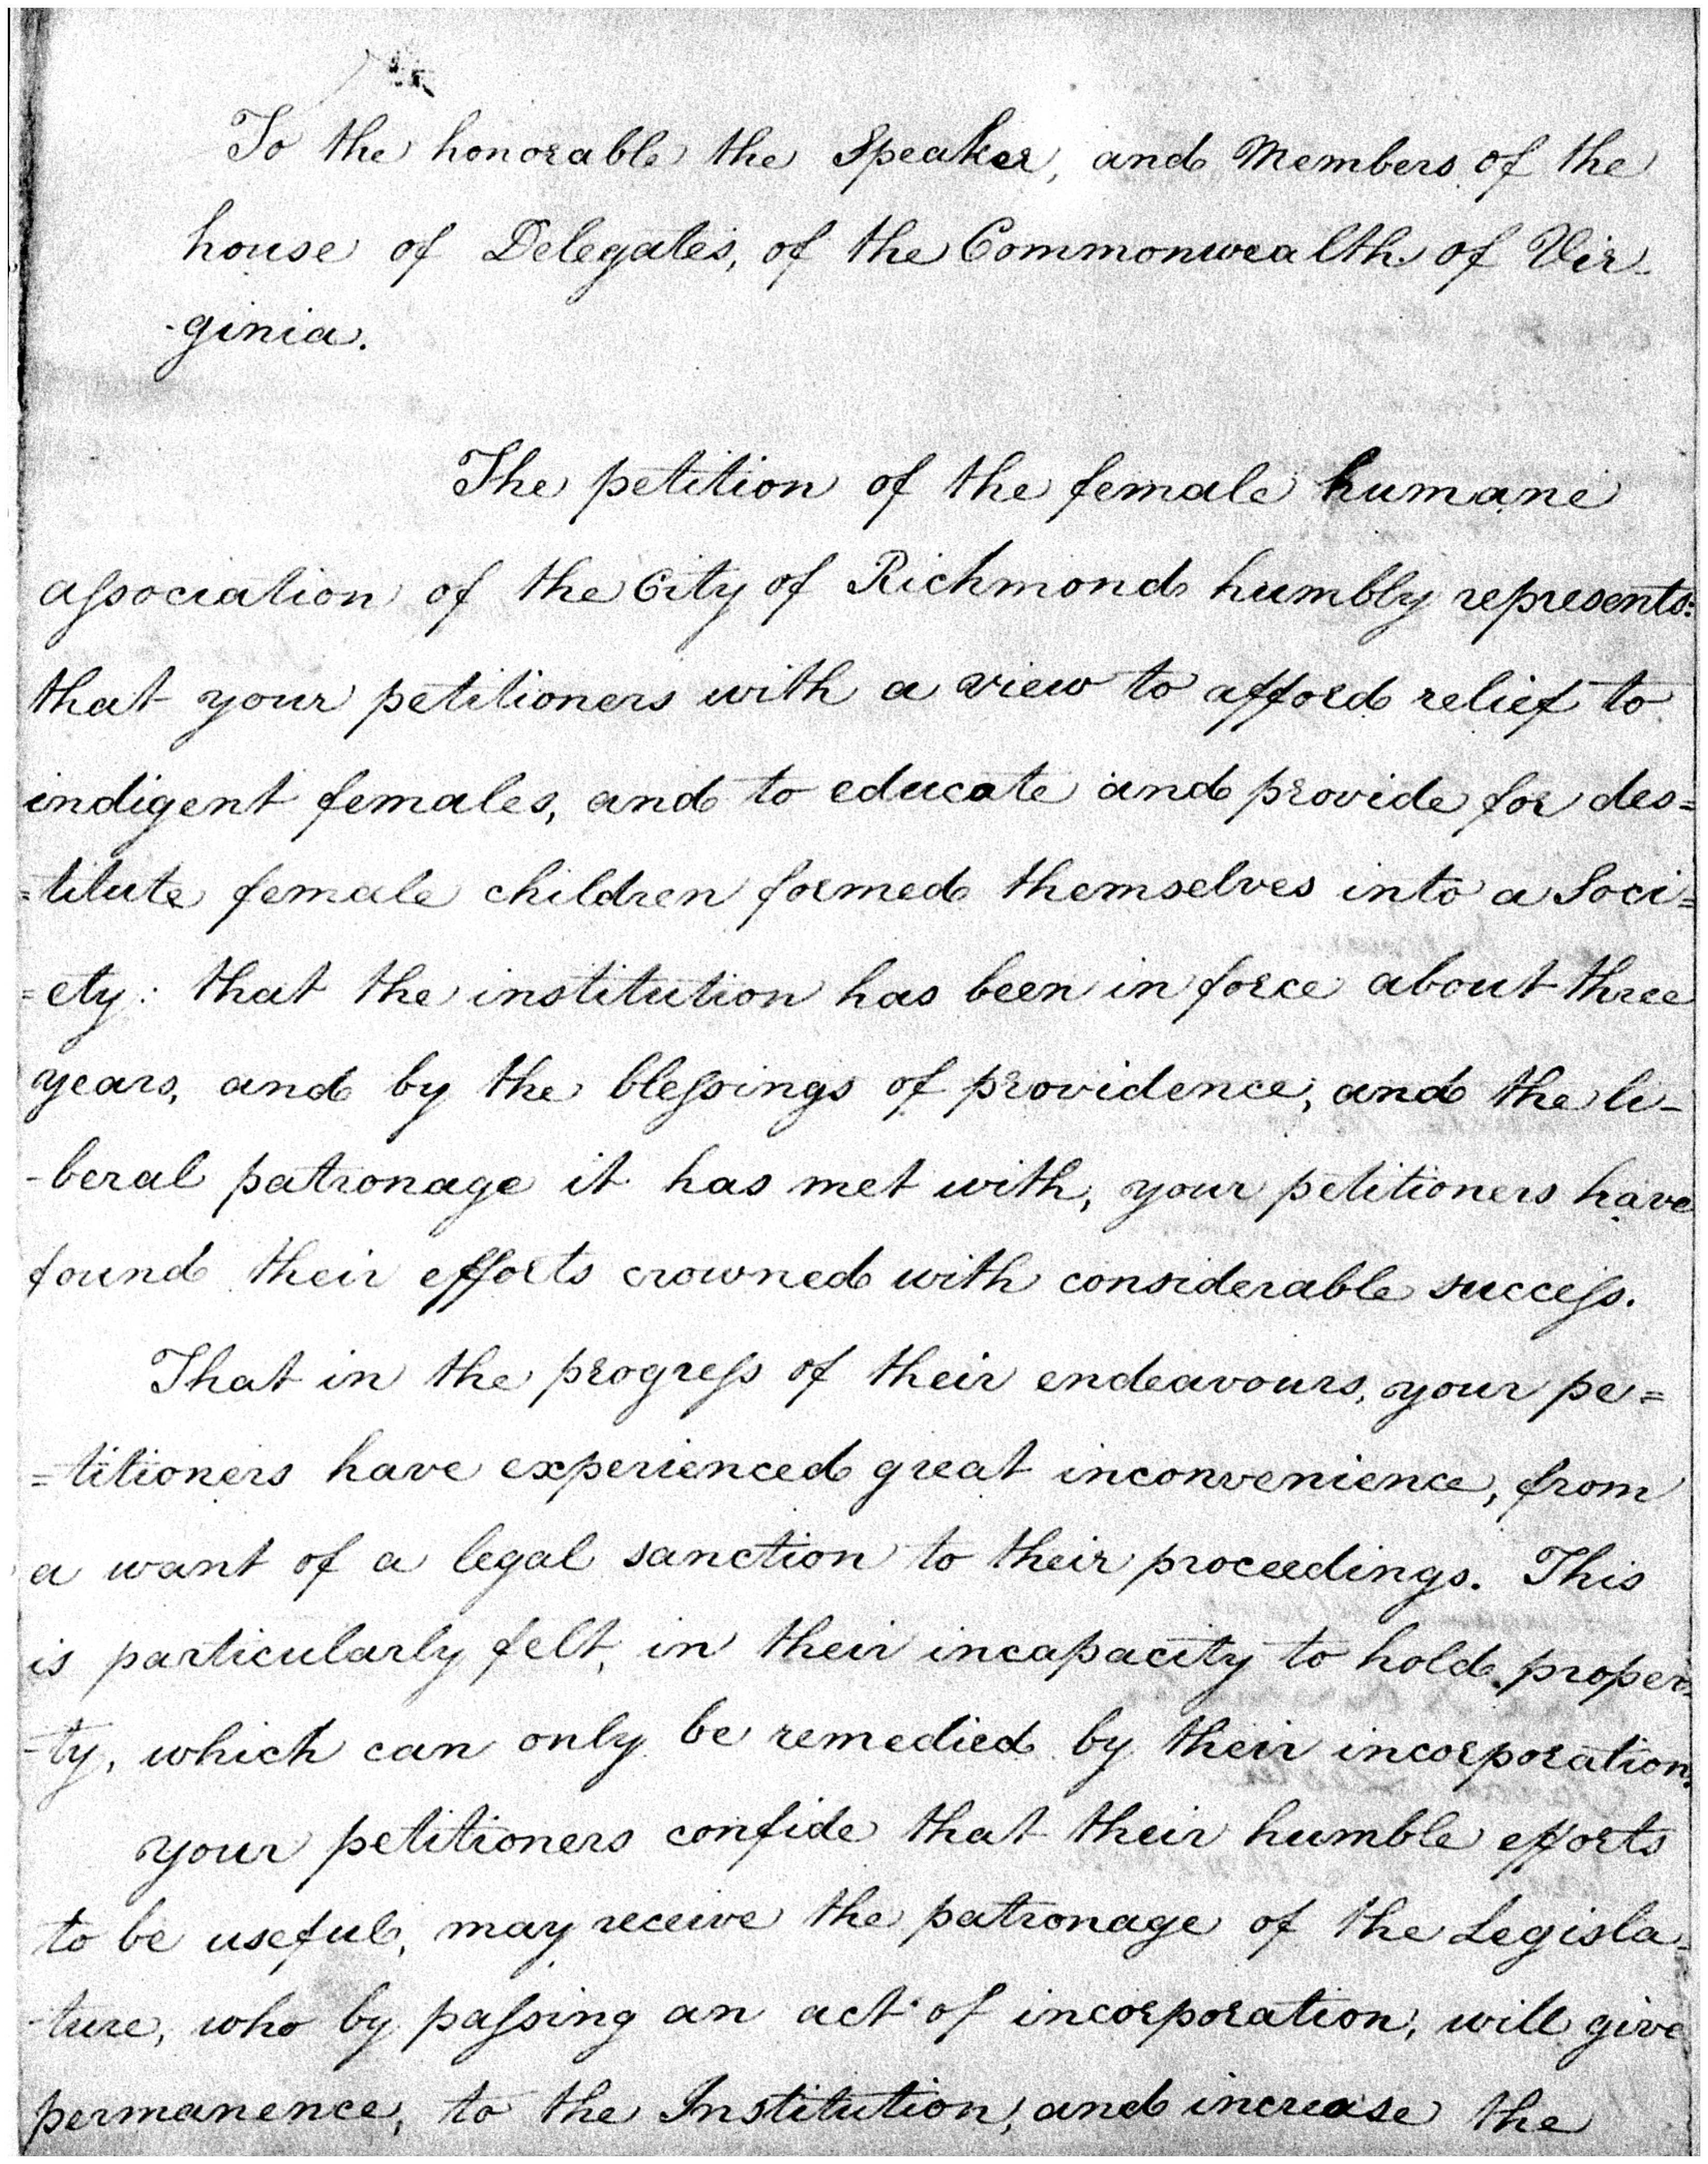 Page 1 of the 1810 petition to incorporate the Female Humane Association of Richmond, in Legislative Petitions of the General Assembly, 1776-1865, Accession 36121, Library of Virginia, Richmond, Va.